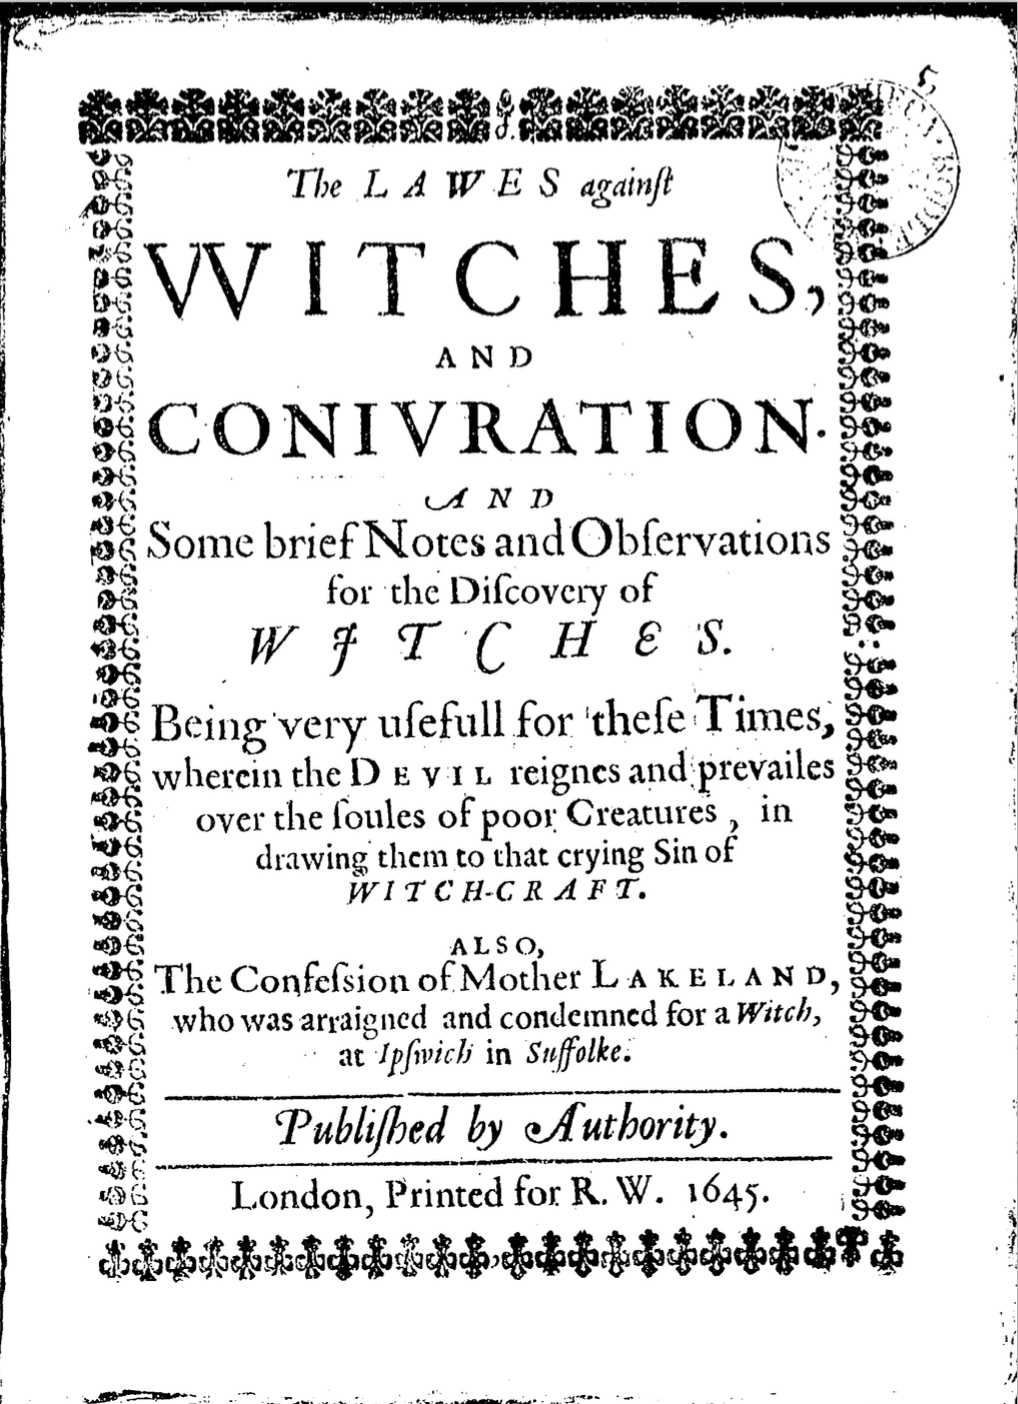 The Lawes against Witches, and Conivration 1645 -  Click here  to read